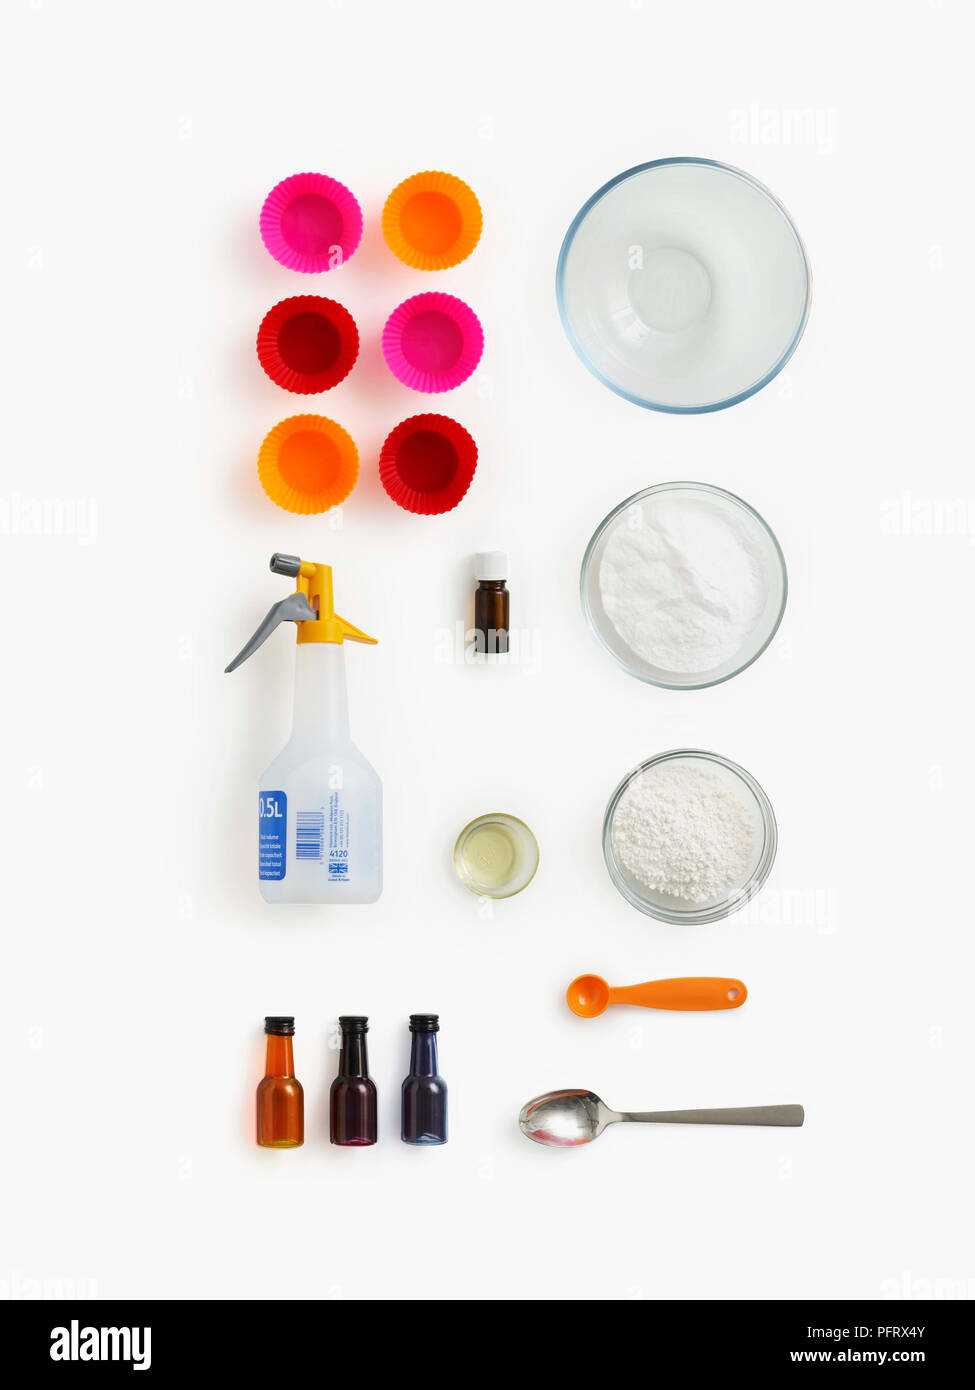 Materials needed to make bath bombs. Science experiemnt to do at home. The materials needed are cake moulds, a large bowl, essential oil, cream of tartare, water in a spray bottle, olive oil, bicarbonate of soda, teaspoon, fod colouring, and a tablespoon. - Stock Image